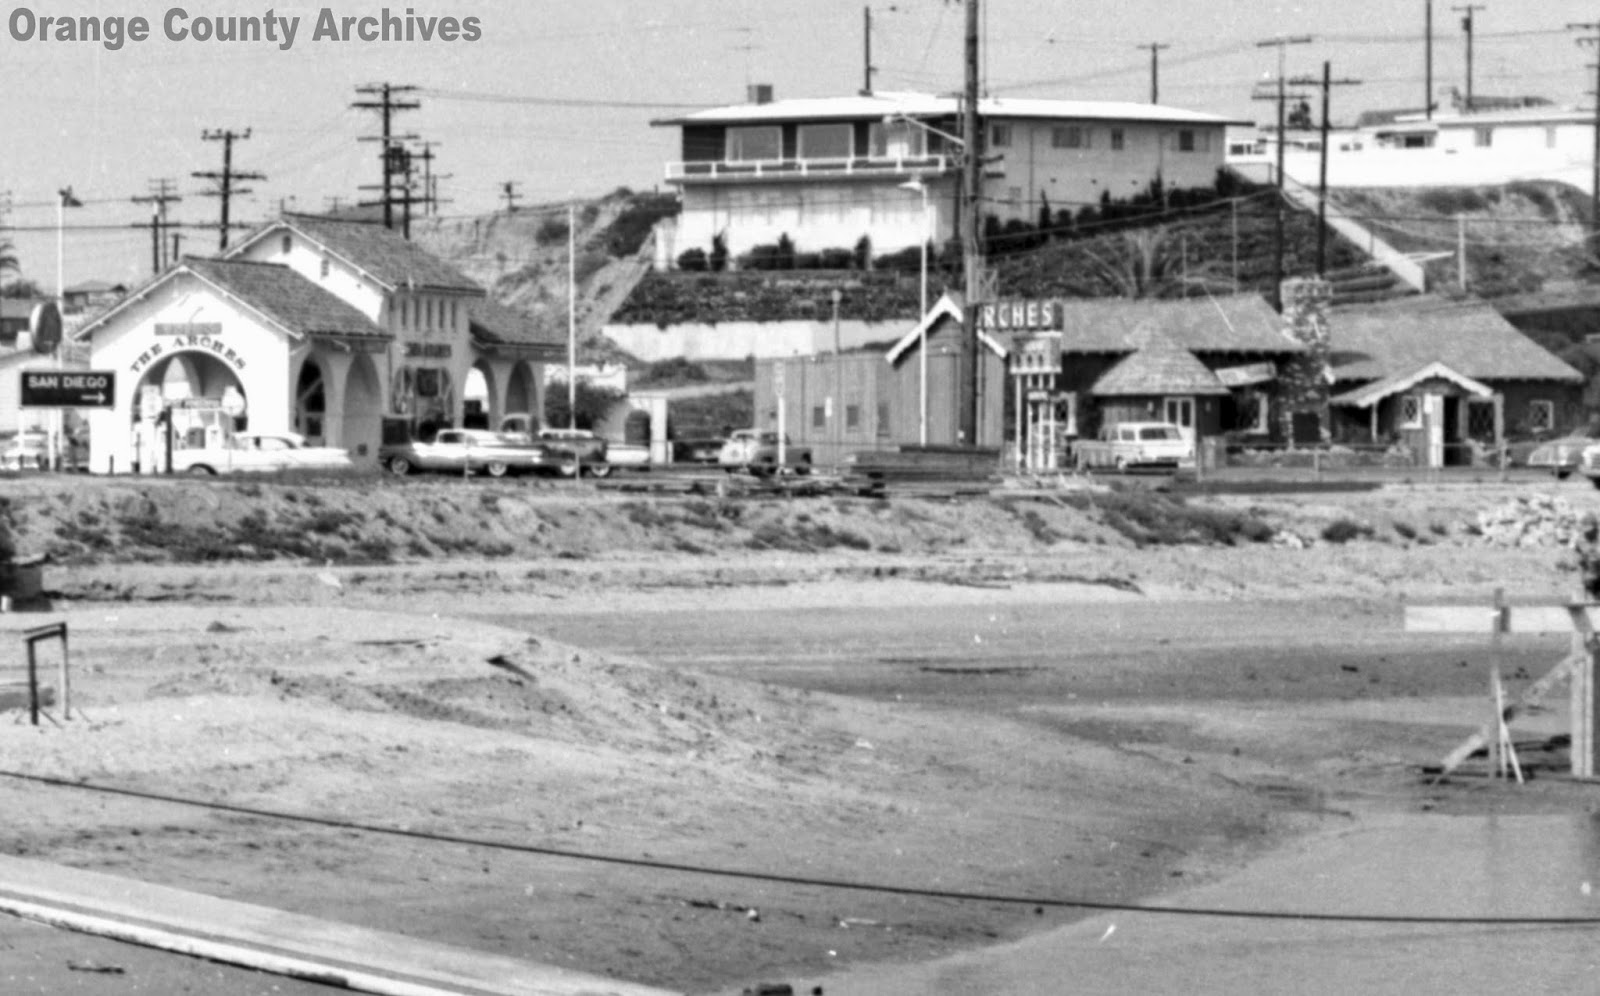 A View Of The Arches From Across Highway Circa 1955